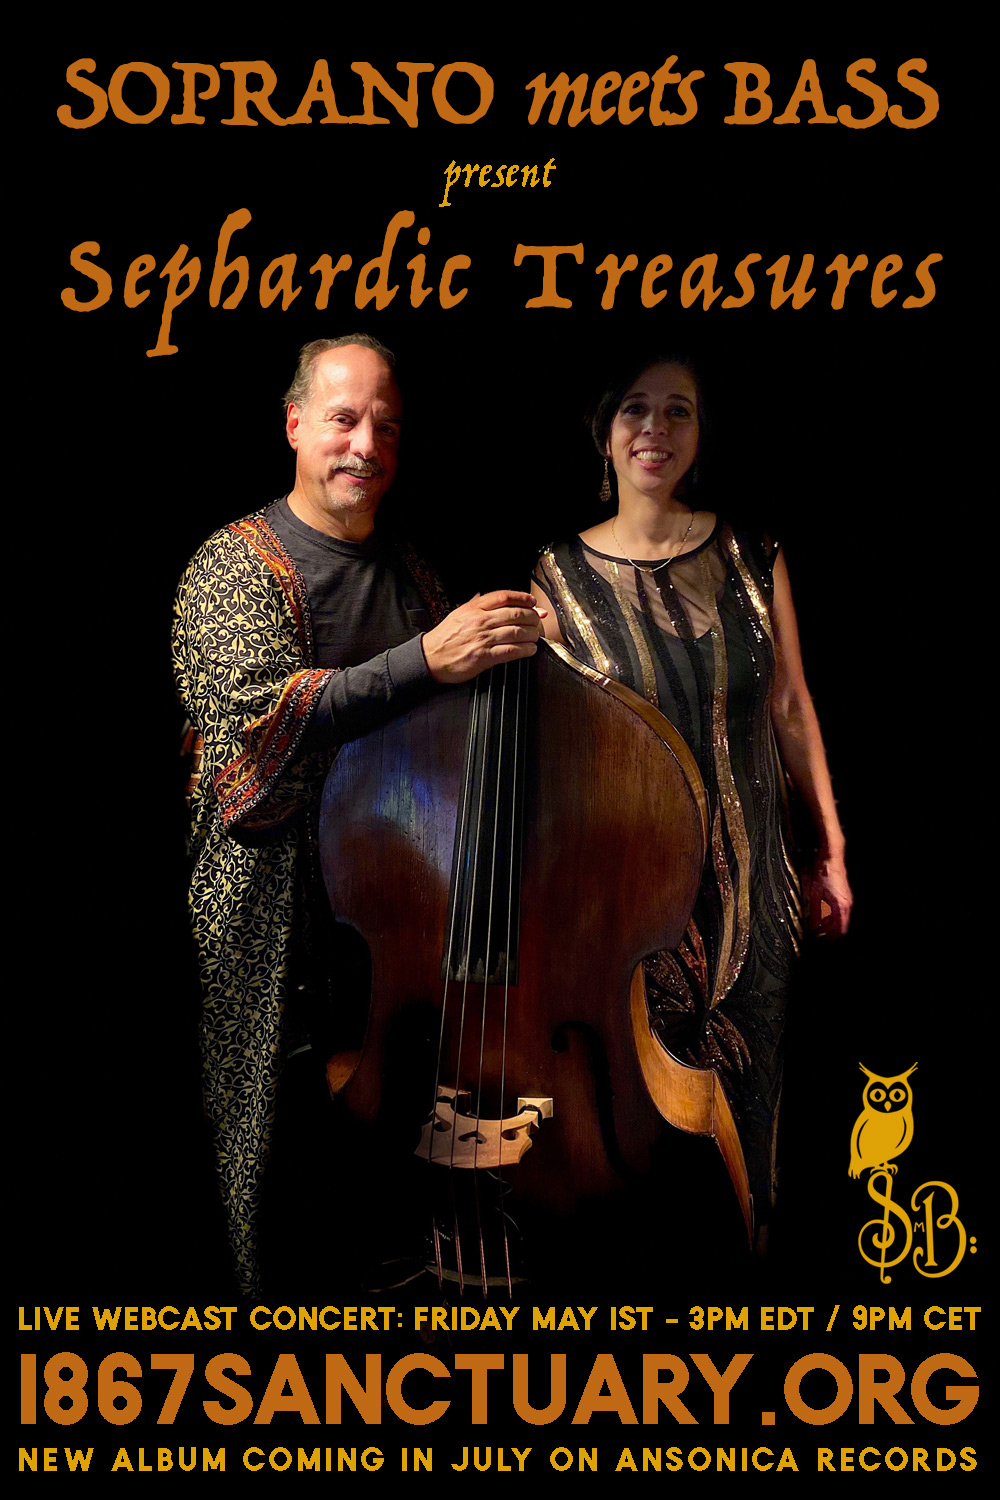 Soprano Meets Bass: Sephardic Treasures